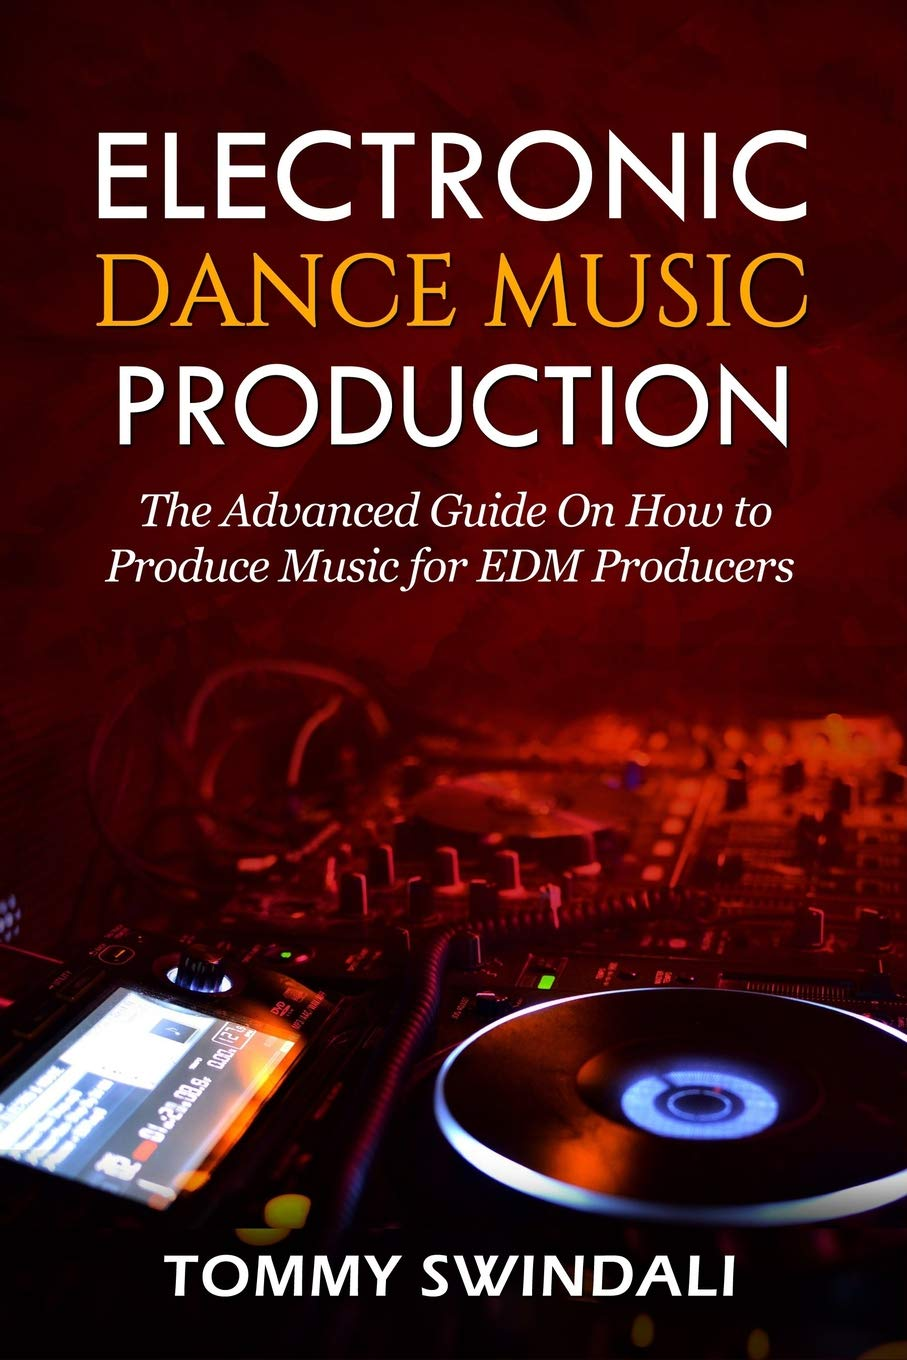 Electronic Dance Music Production: The Advanced Guide On How to